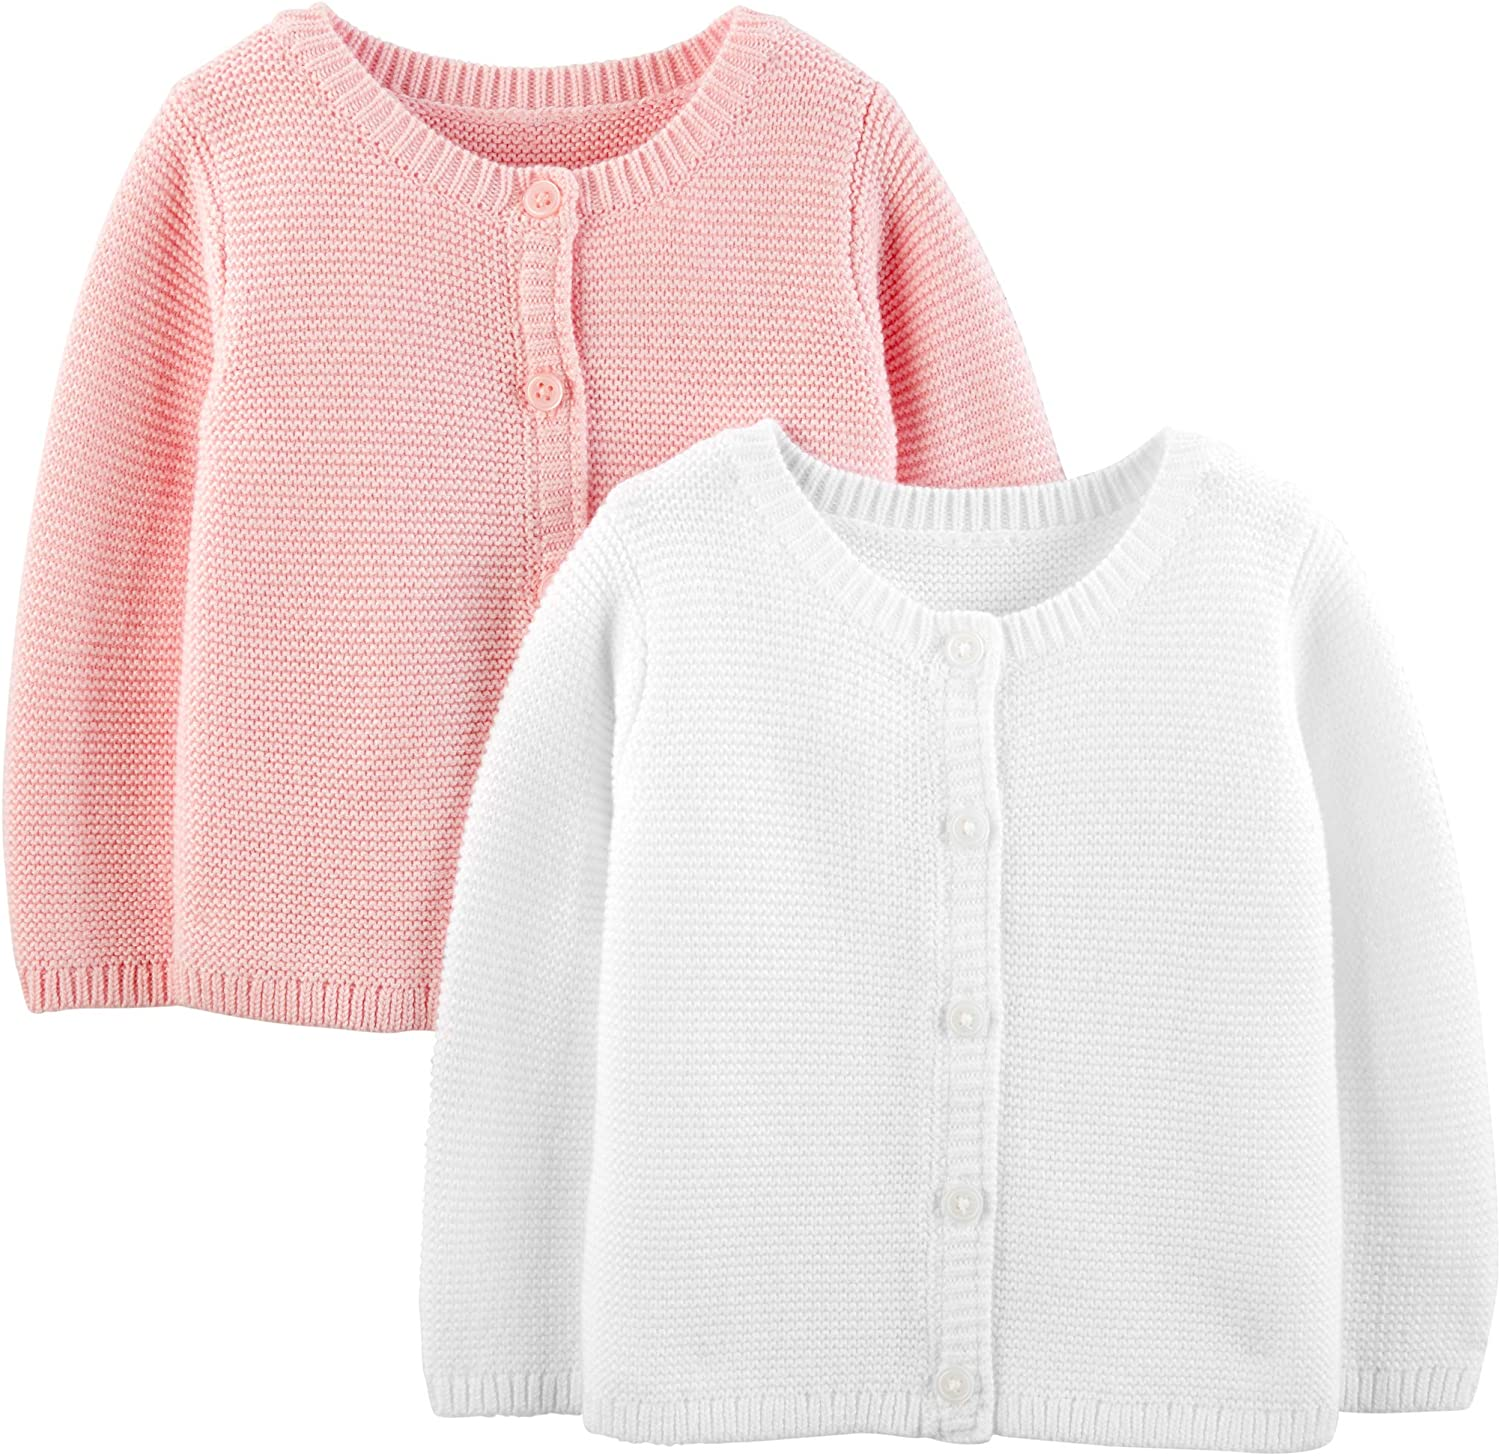 Simple Joys by Carter's Baby Girls' 2-Pack Knit Cardigan Sweaters